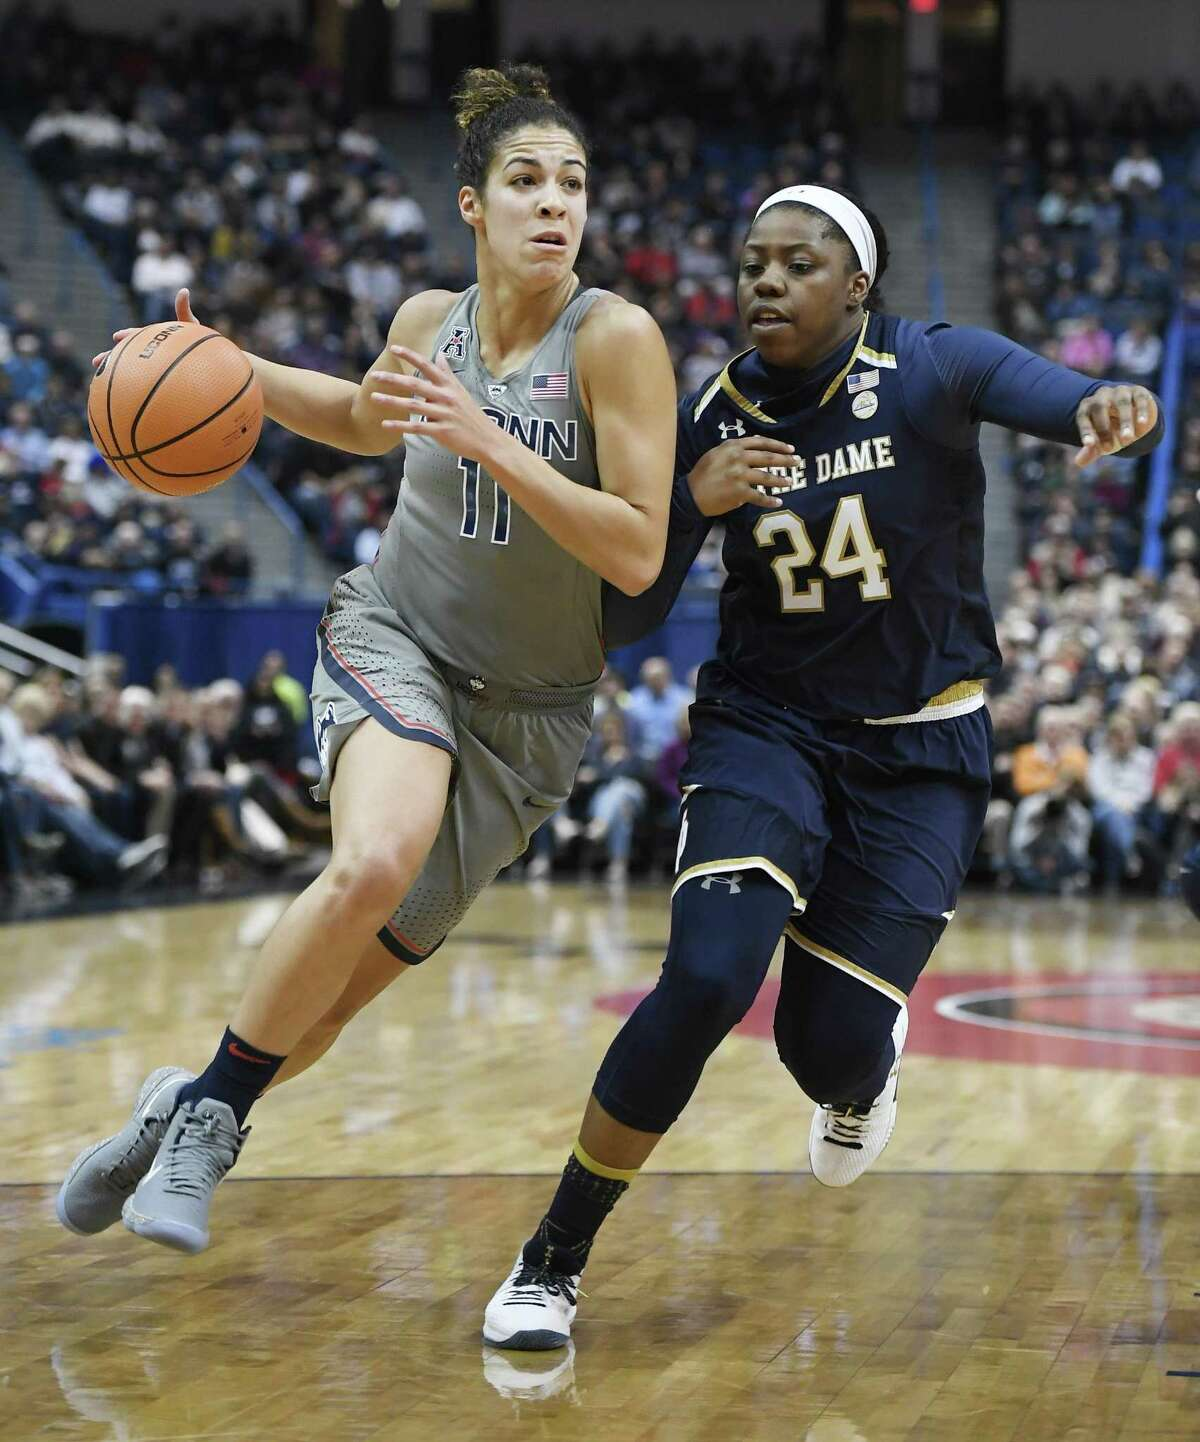 UConn's Kia Nurse dribbles as Notre Dame's Arike Ogunbowale defends during the first half Sunday in Hartford.